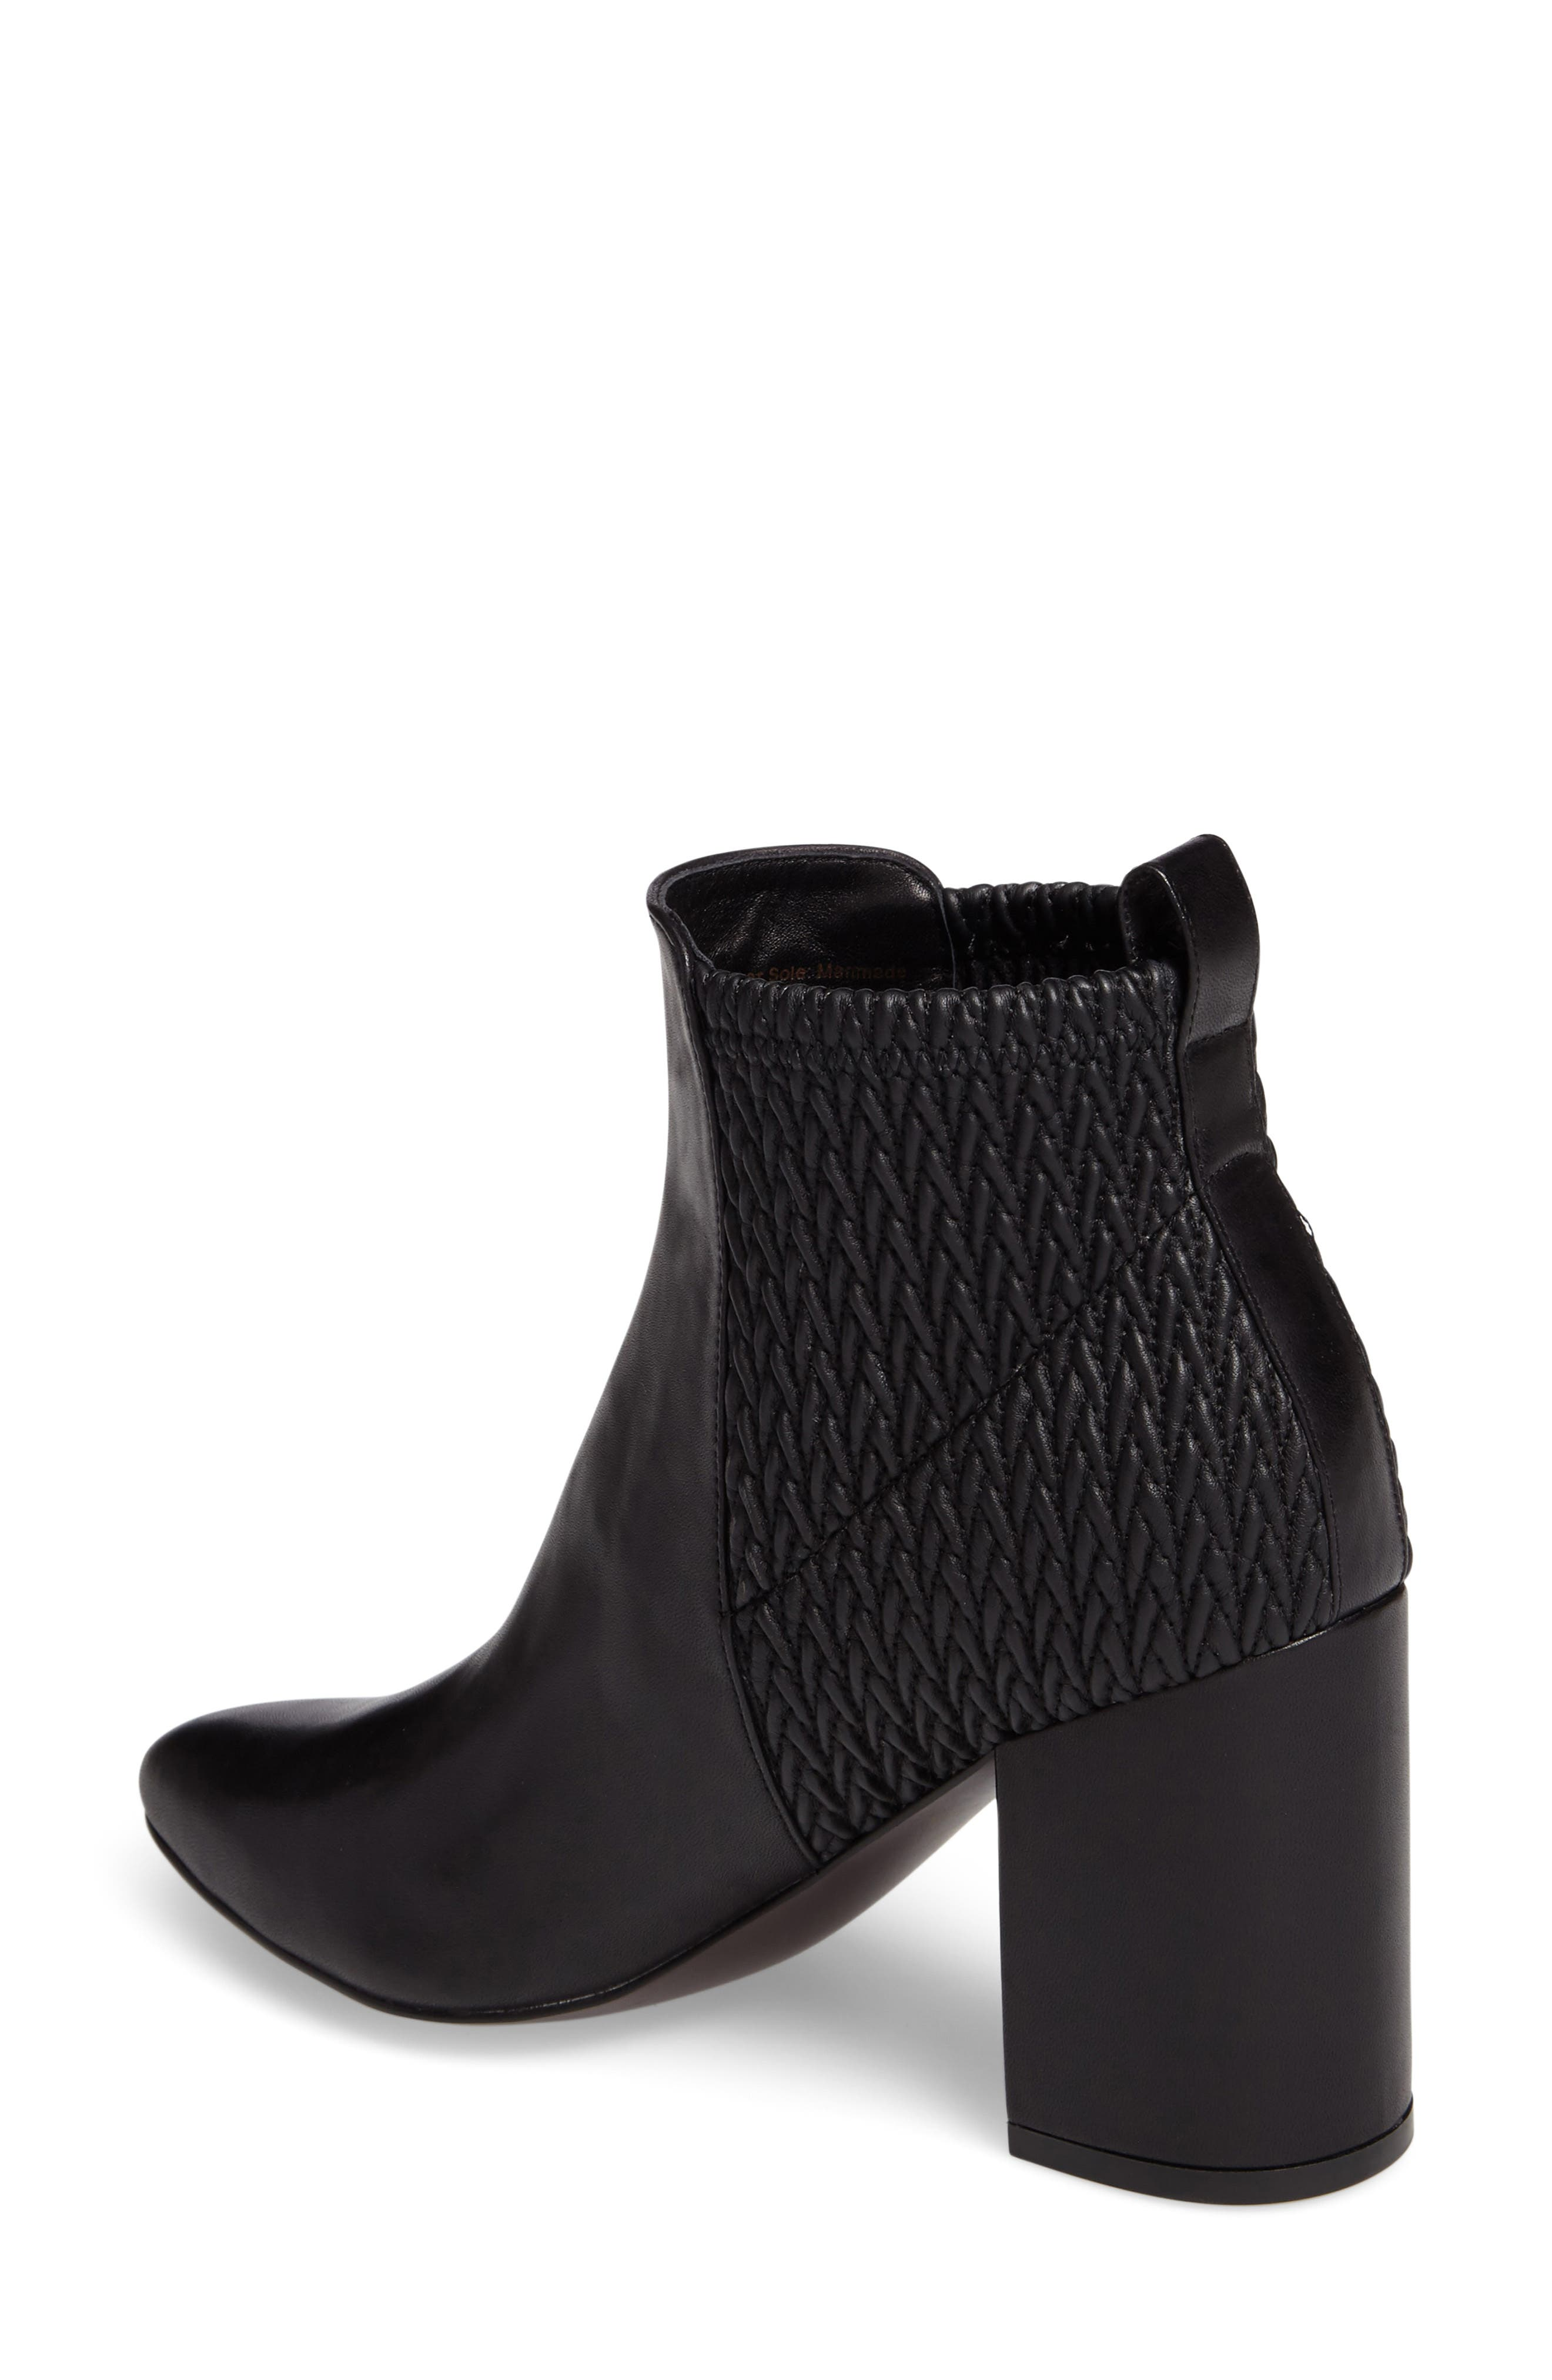 Aylin Bootie,                             Alternate thumbnail 2, color,                             001